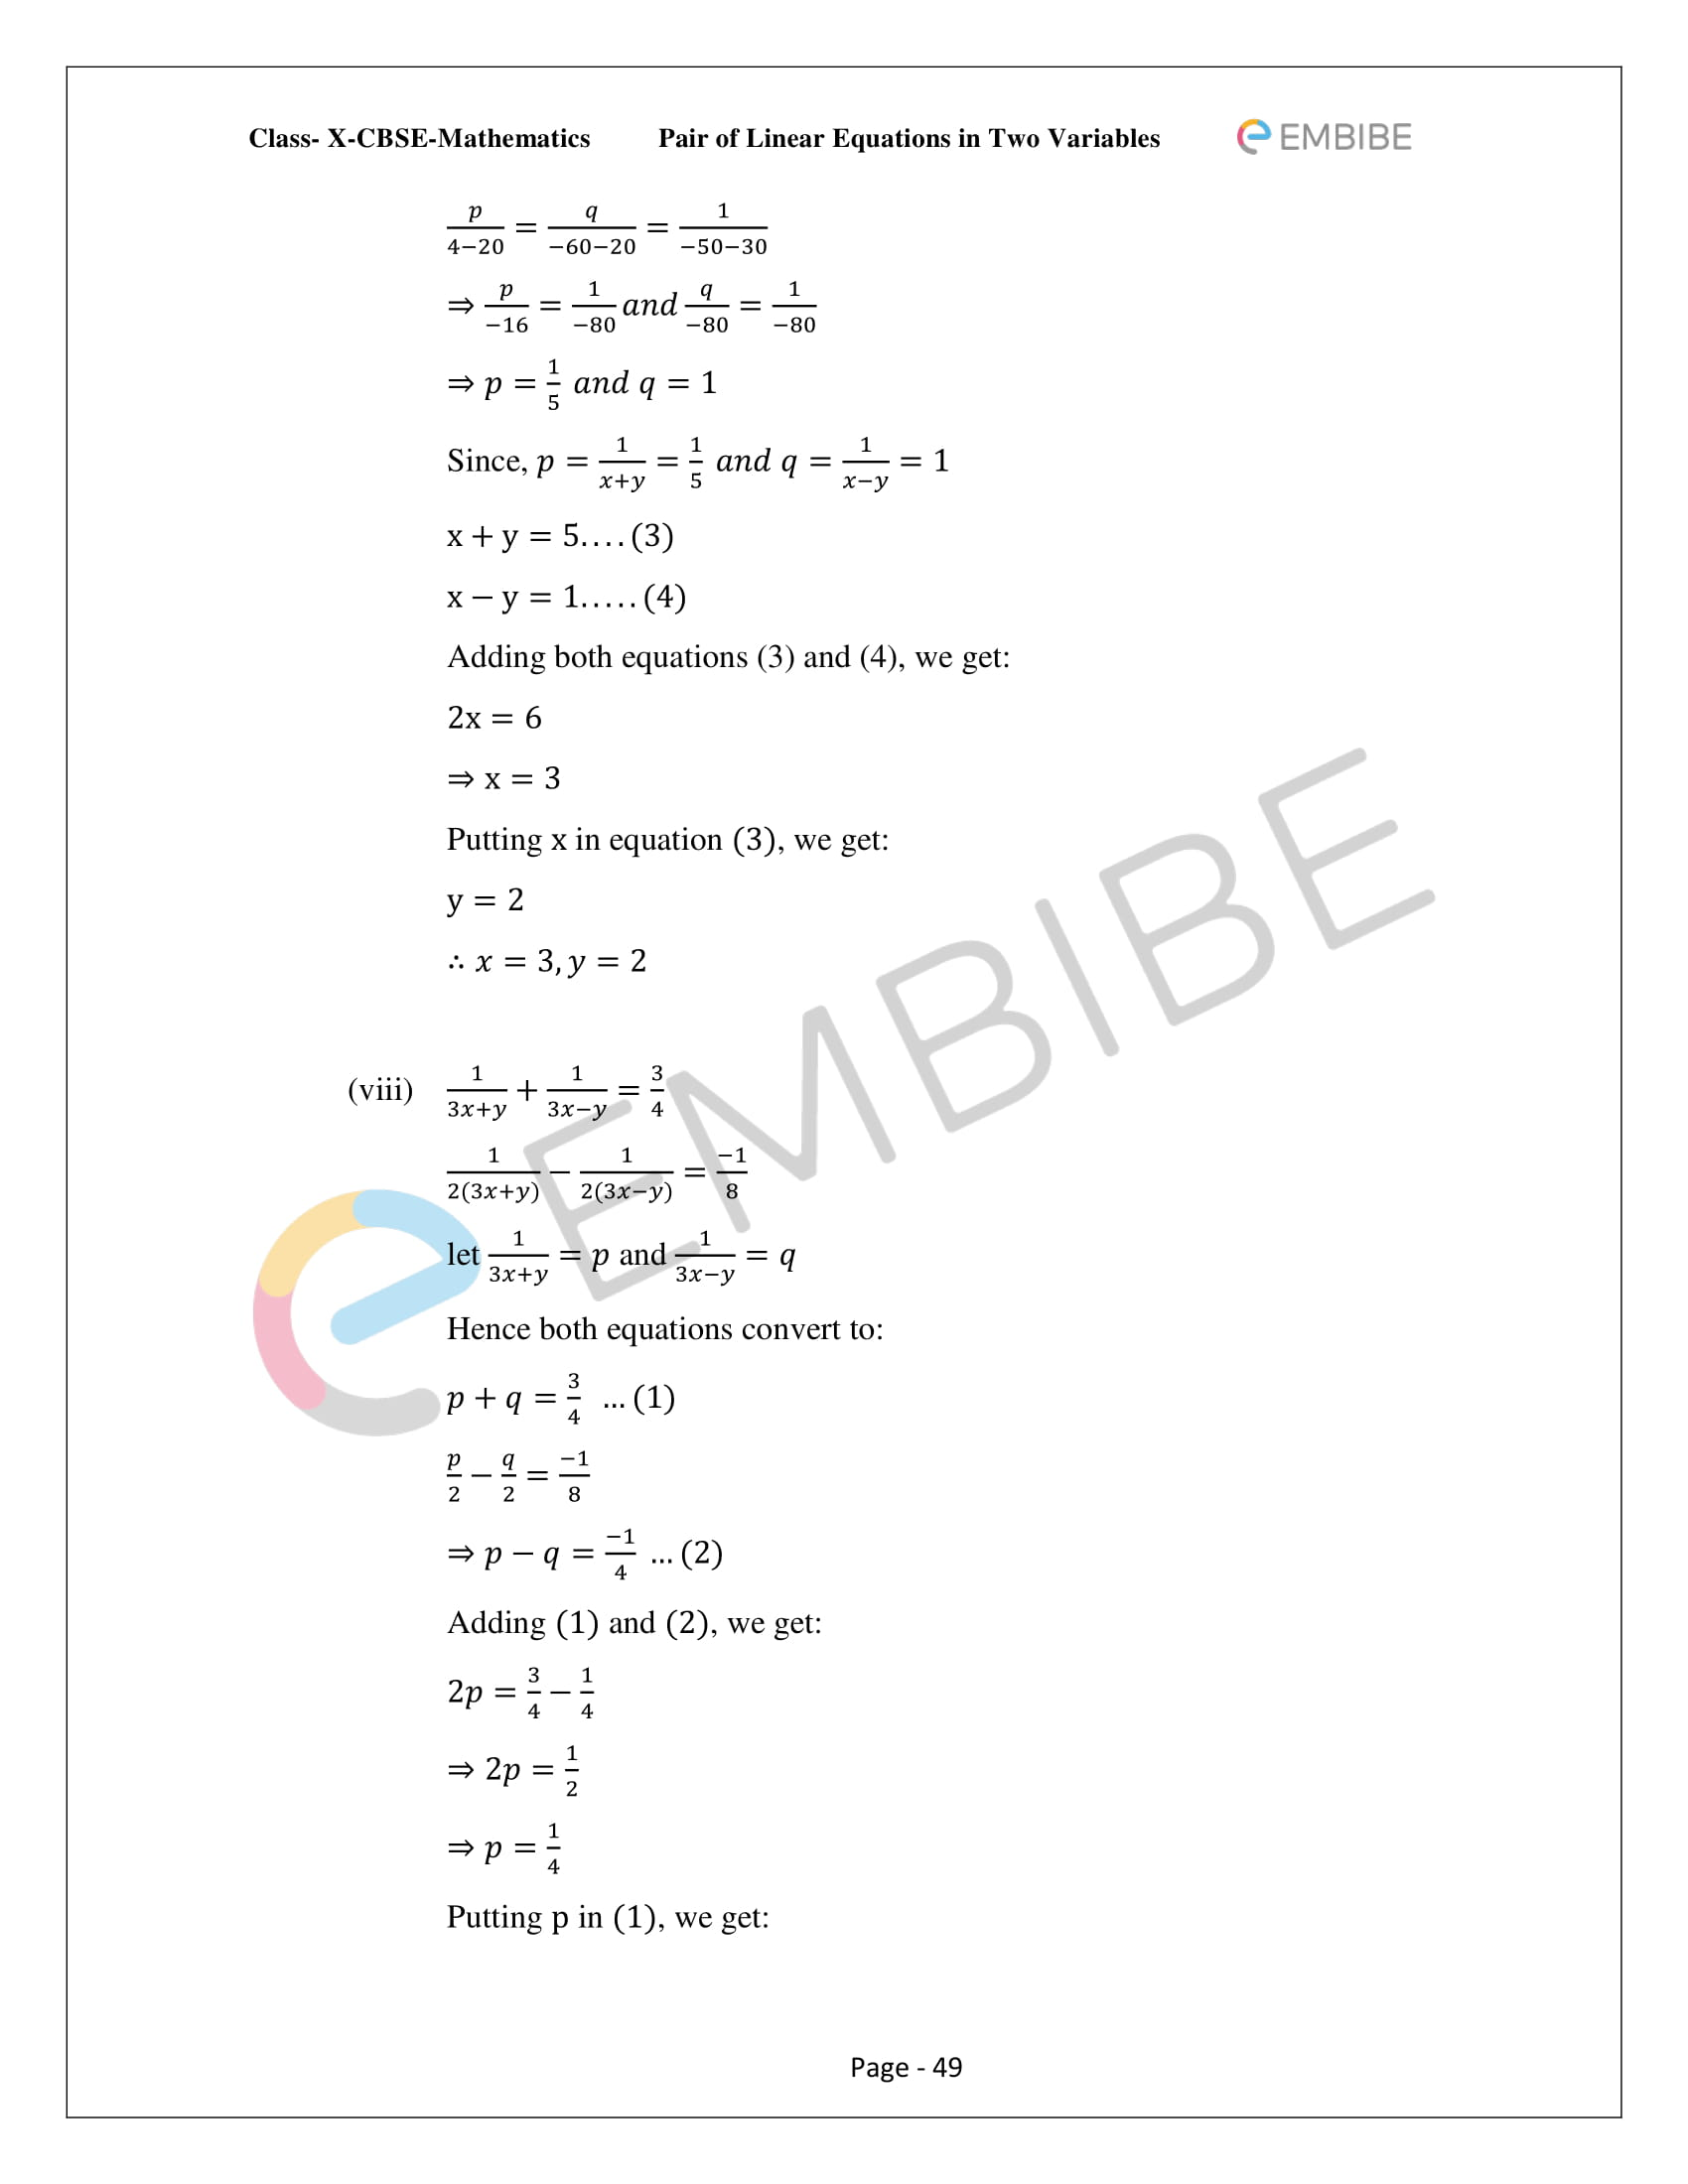 CBSE NCERT Solutions For Class 10 Maths Chapter 3 - Pair of Linear Equations In Two Variables - 49